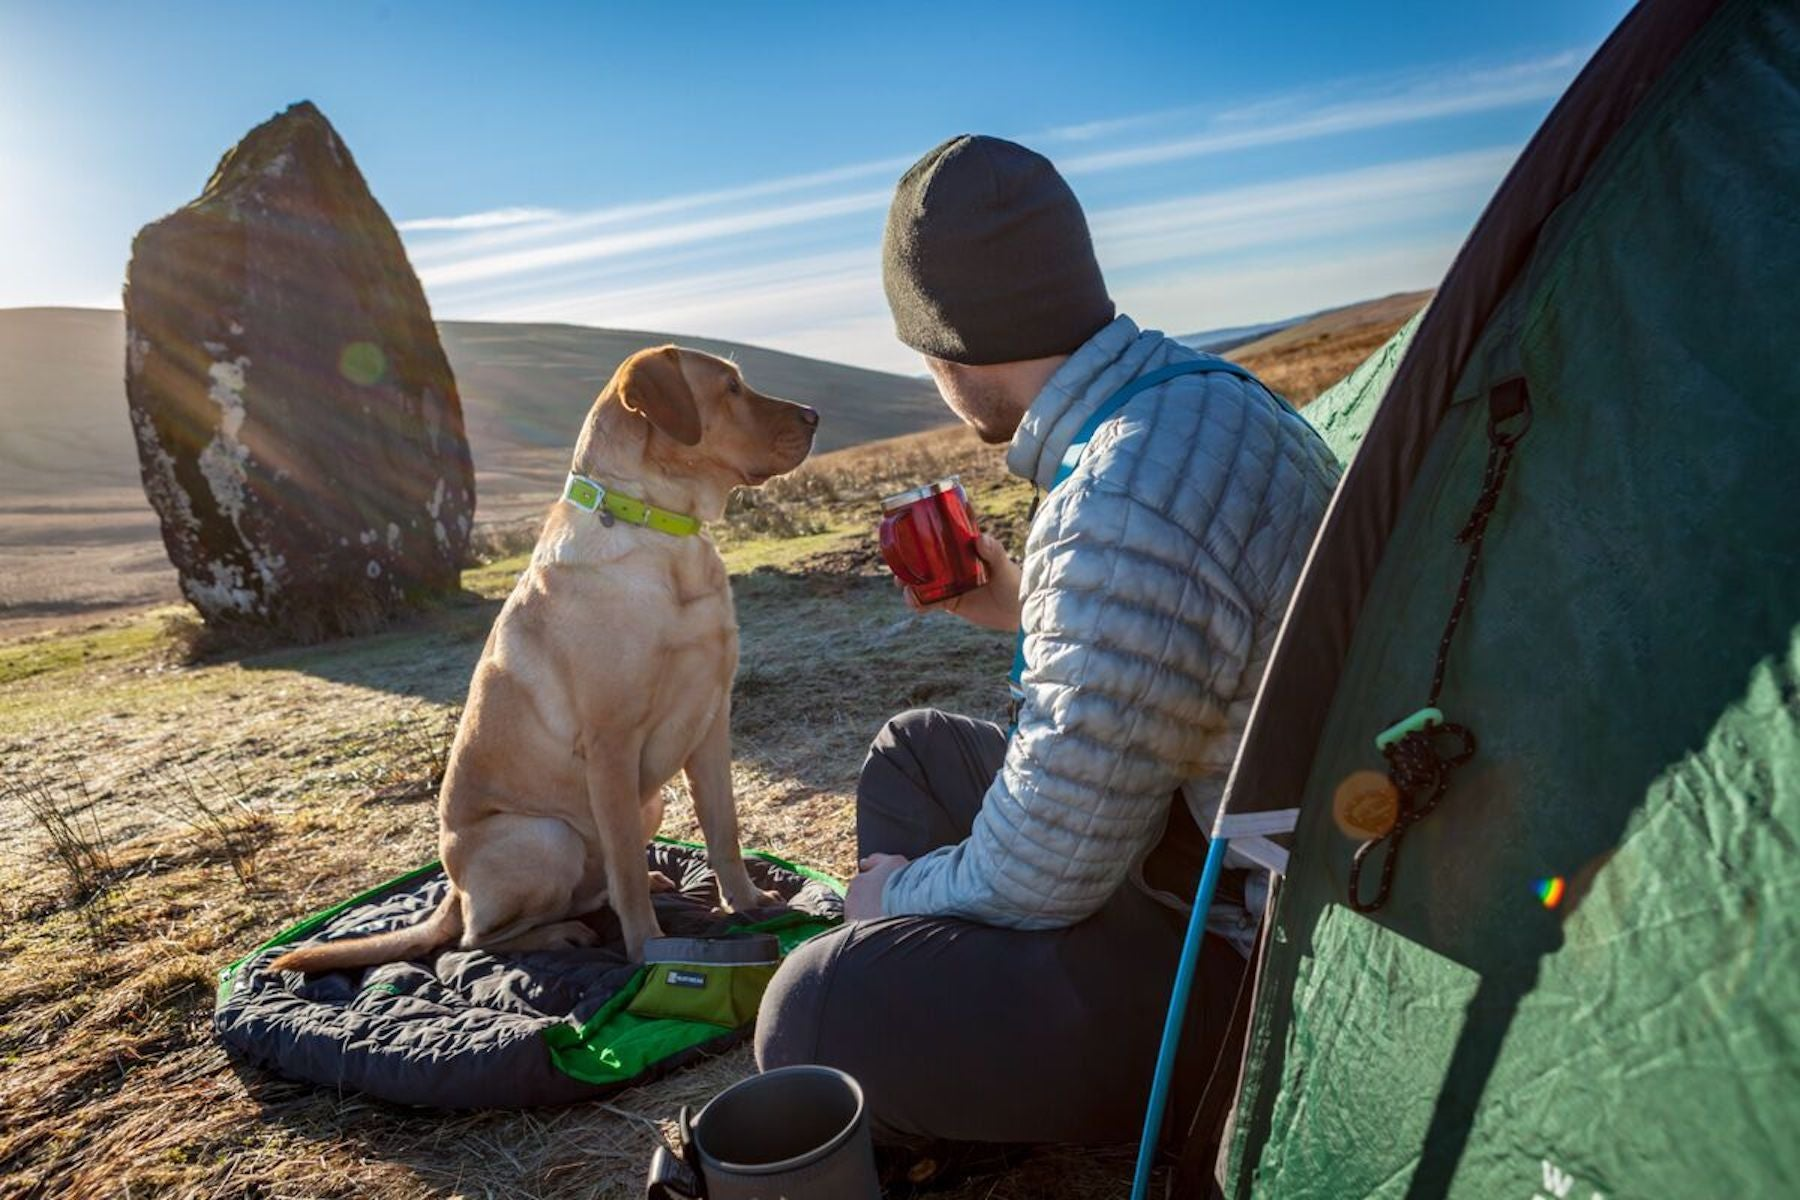 Dog and Human sitting outside their tent